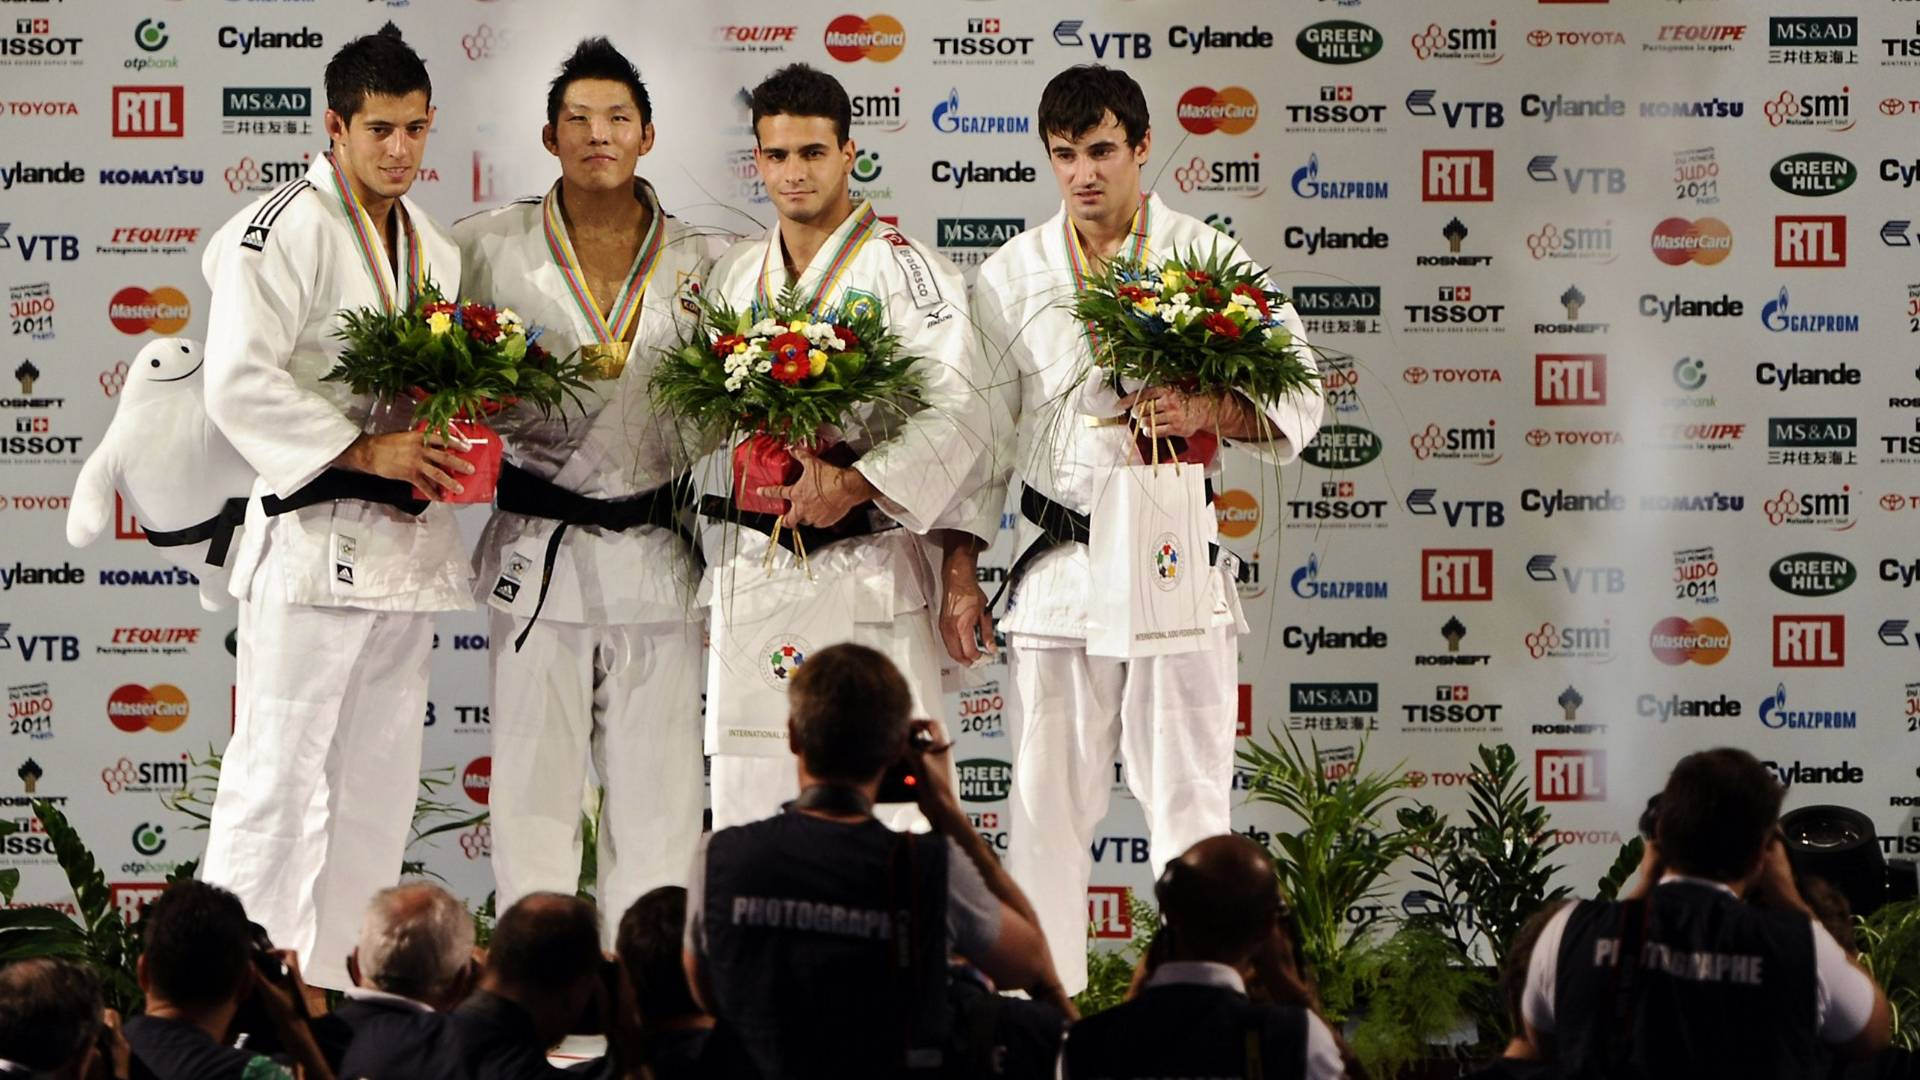 Pódio da categoria até 81kg, com Leandro Guilheiro, bronze, no centro (25/08/2011)